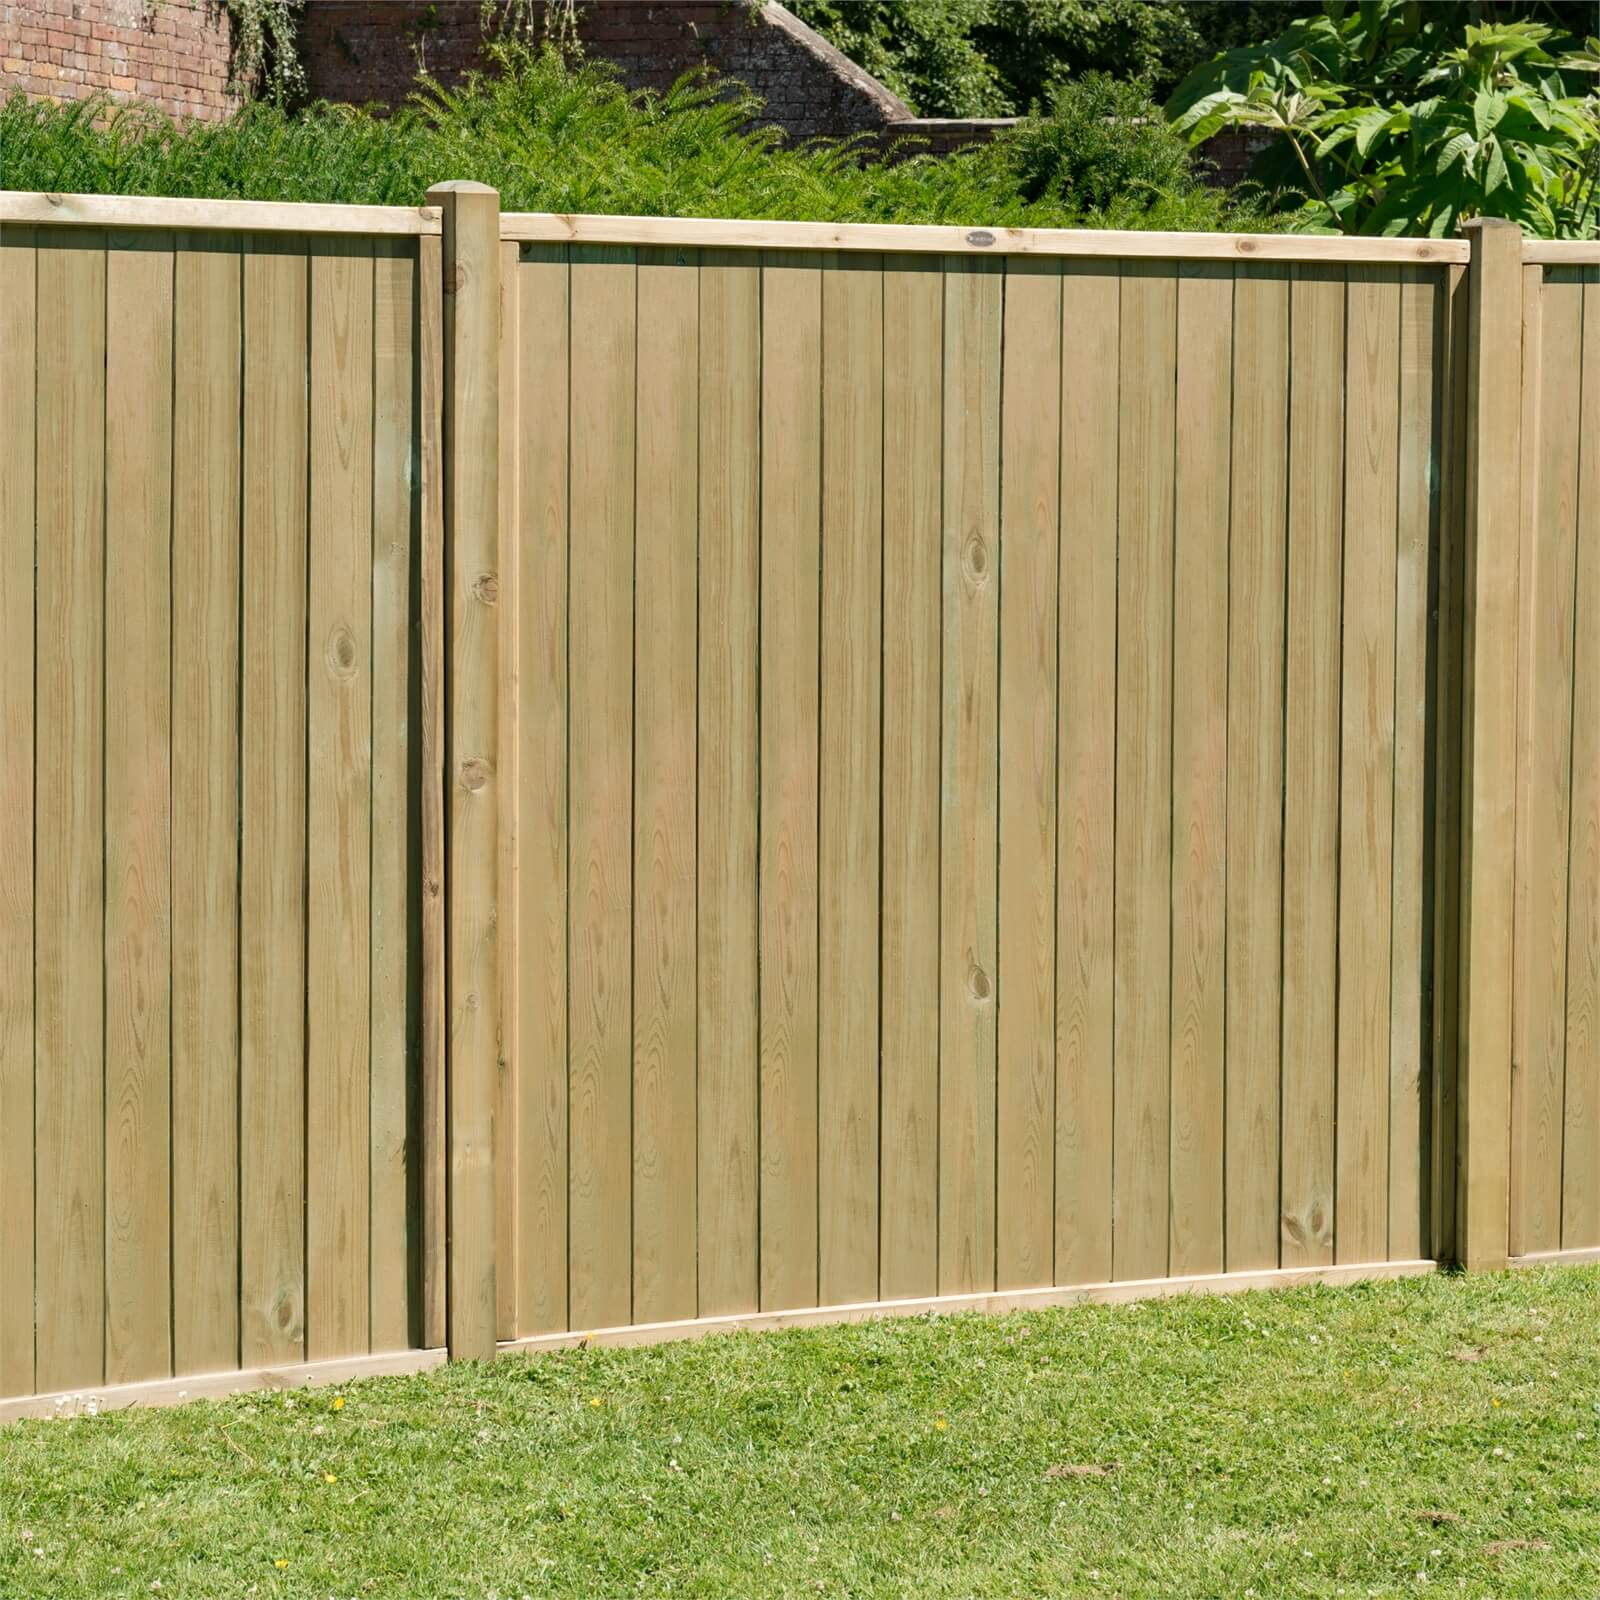 Forest Vertical Tongue & Groove Fence Panel - 5ft - Pack of 4